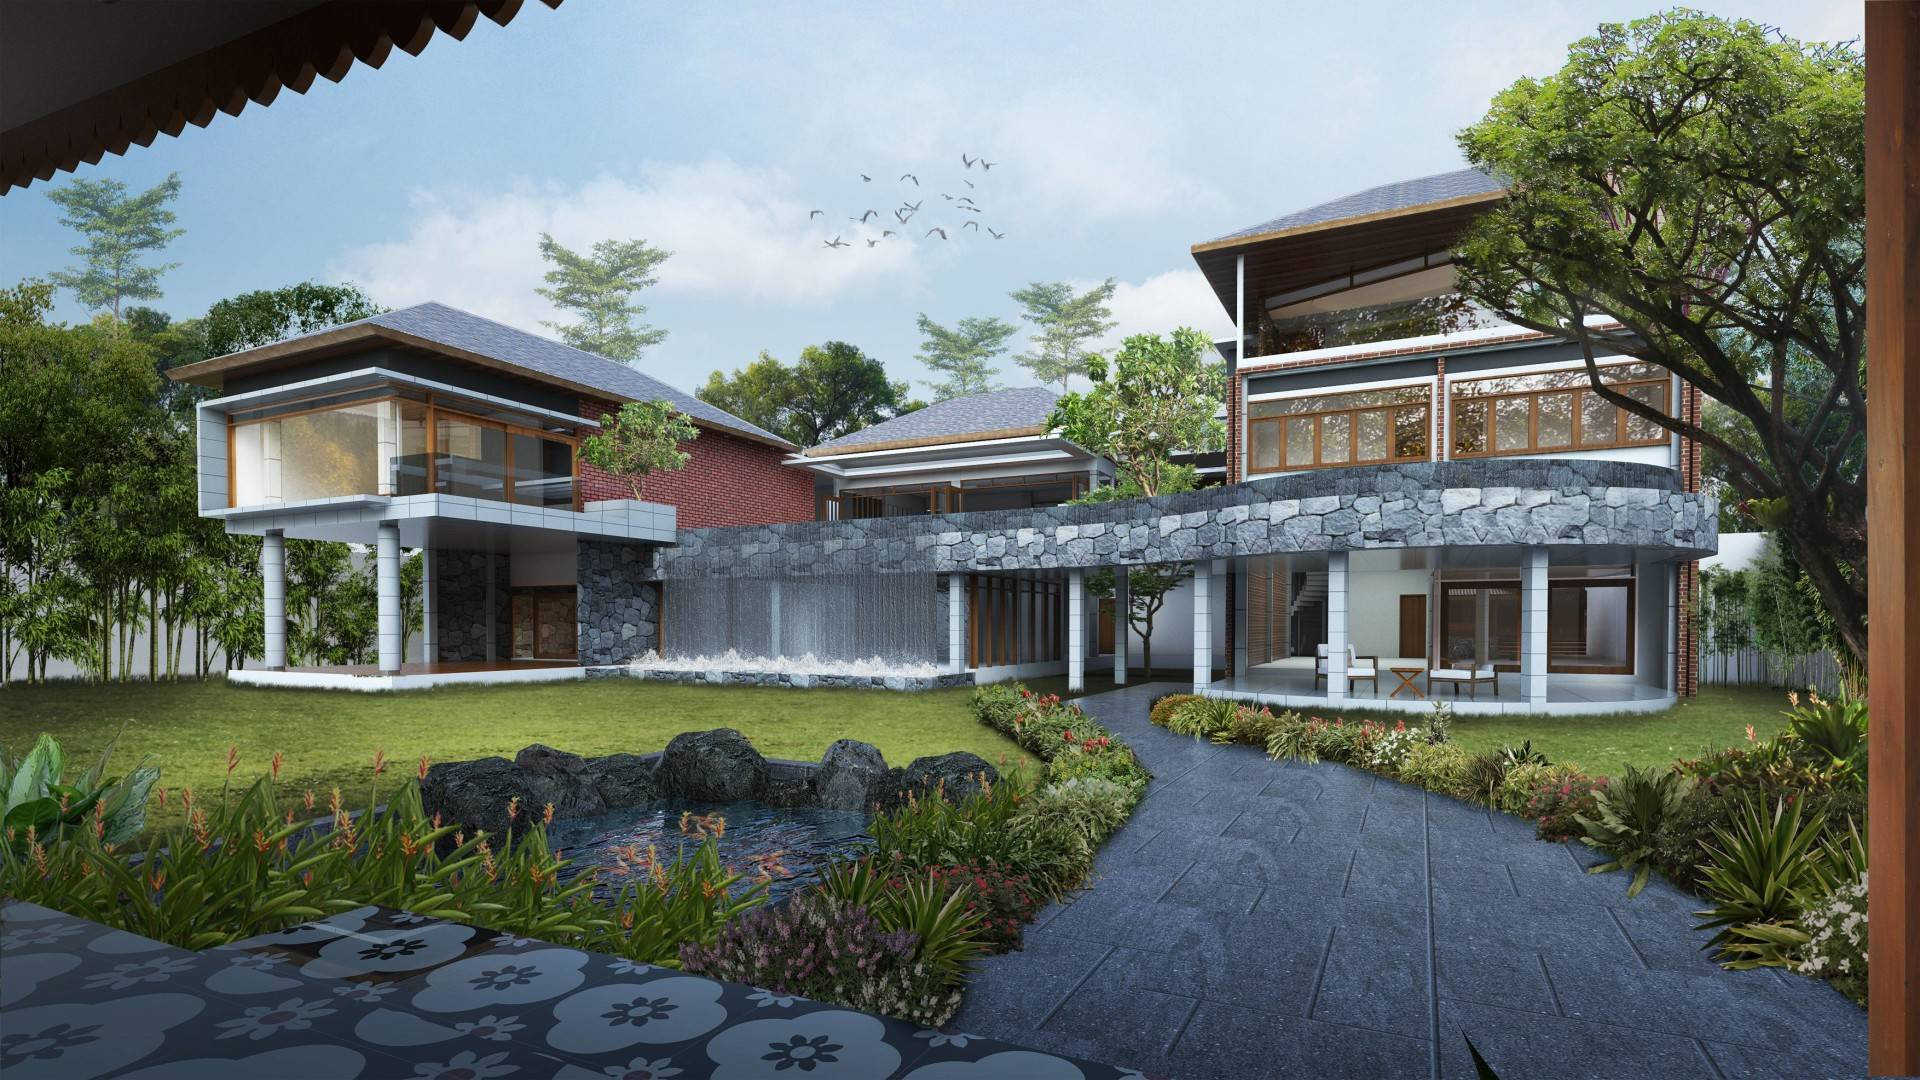 Saso Architecture Studio Private House - Mansion House Kudus Regency, Central Java, Indonesia Kudus Central Java Facade   3319